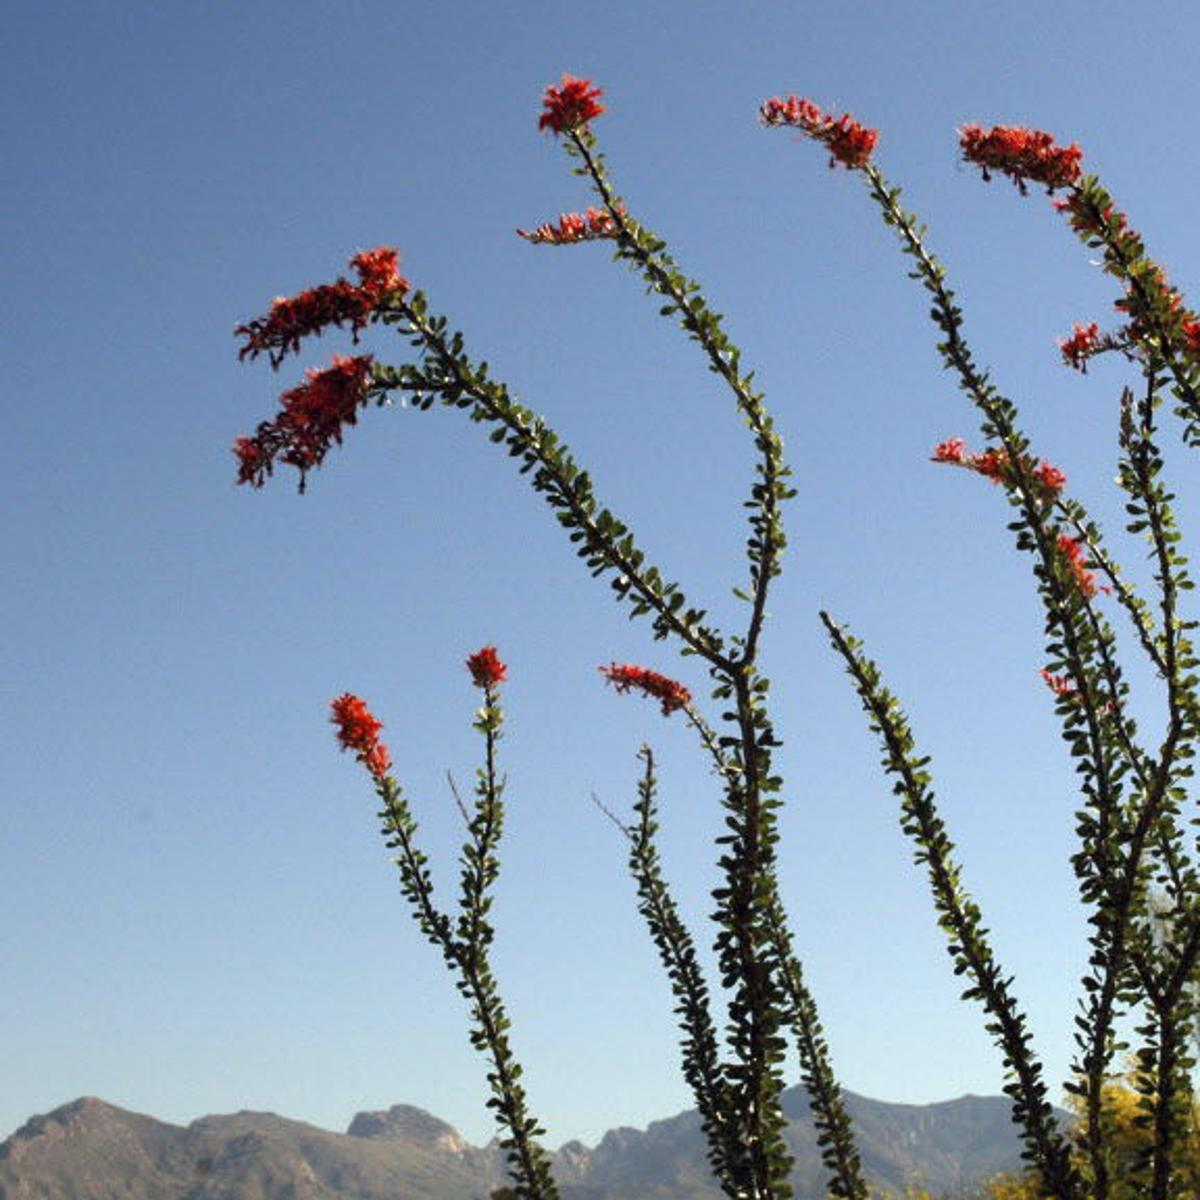 10 Ocotillo Facts That Will Make You Love This Desert Plant Even